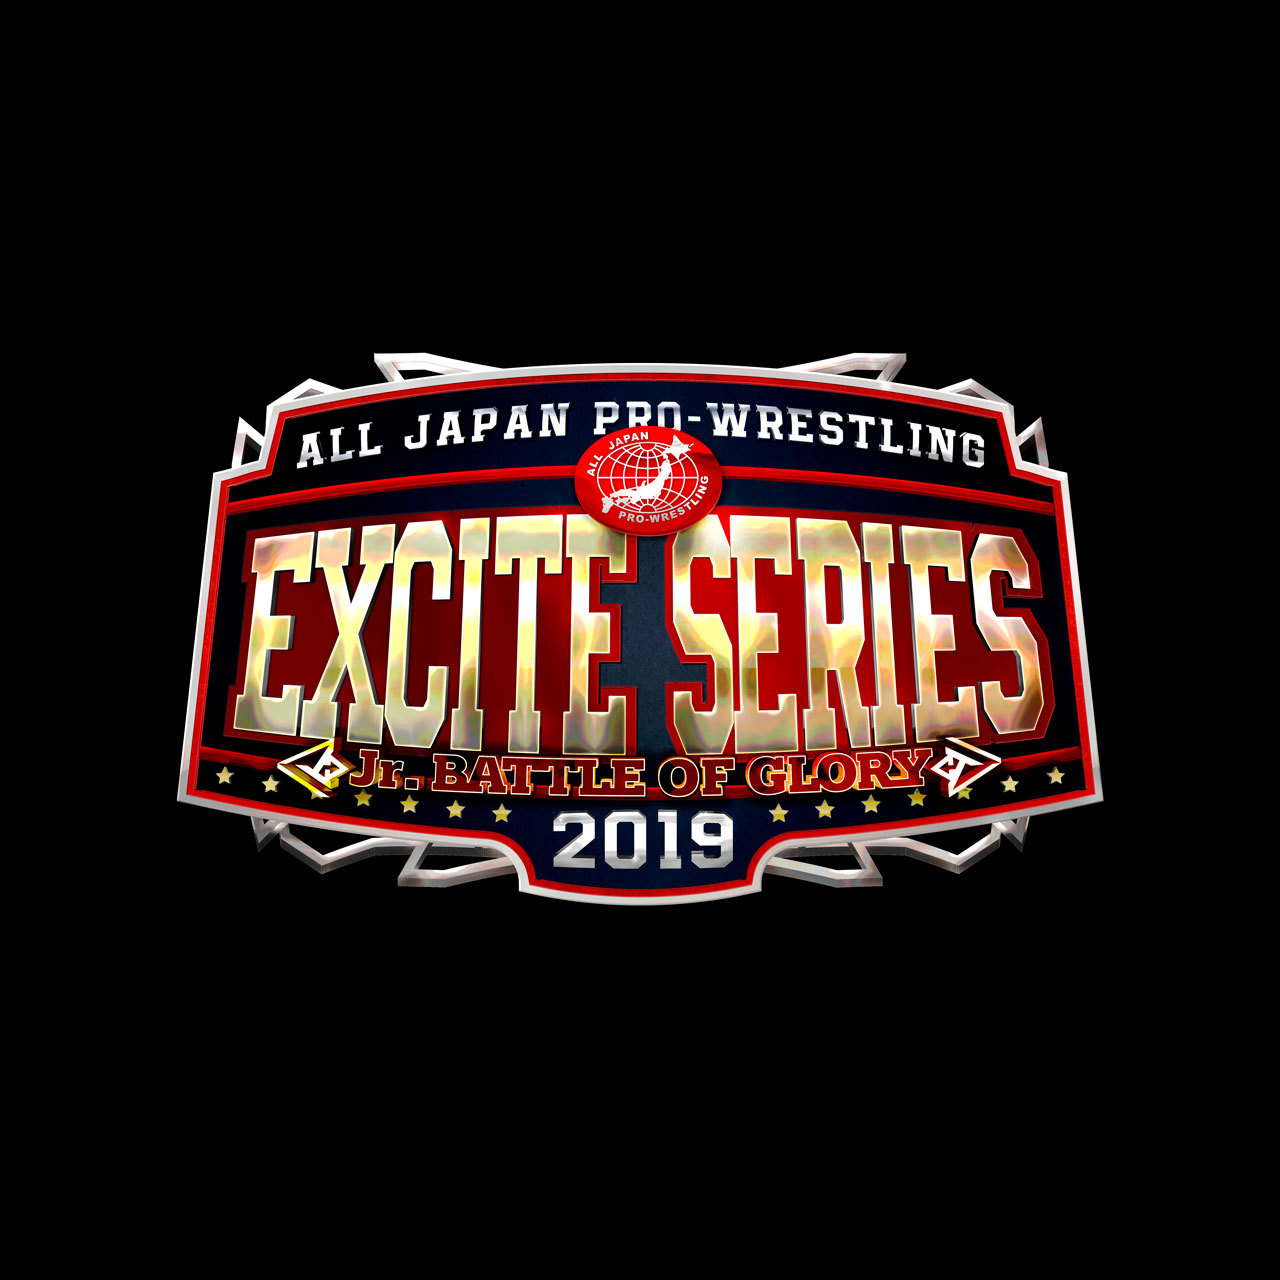 『2019 EXCITE SERIES[最終戦]』は2月24日(日)開催